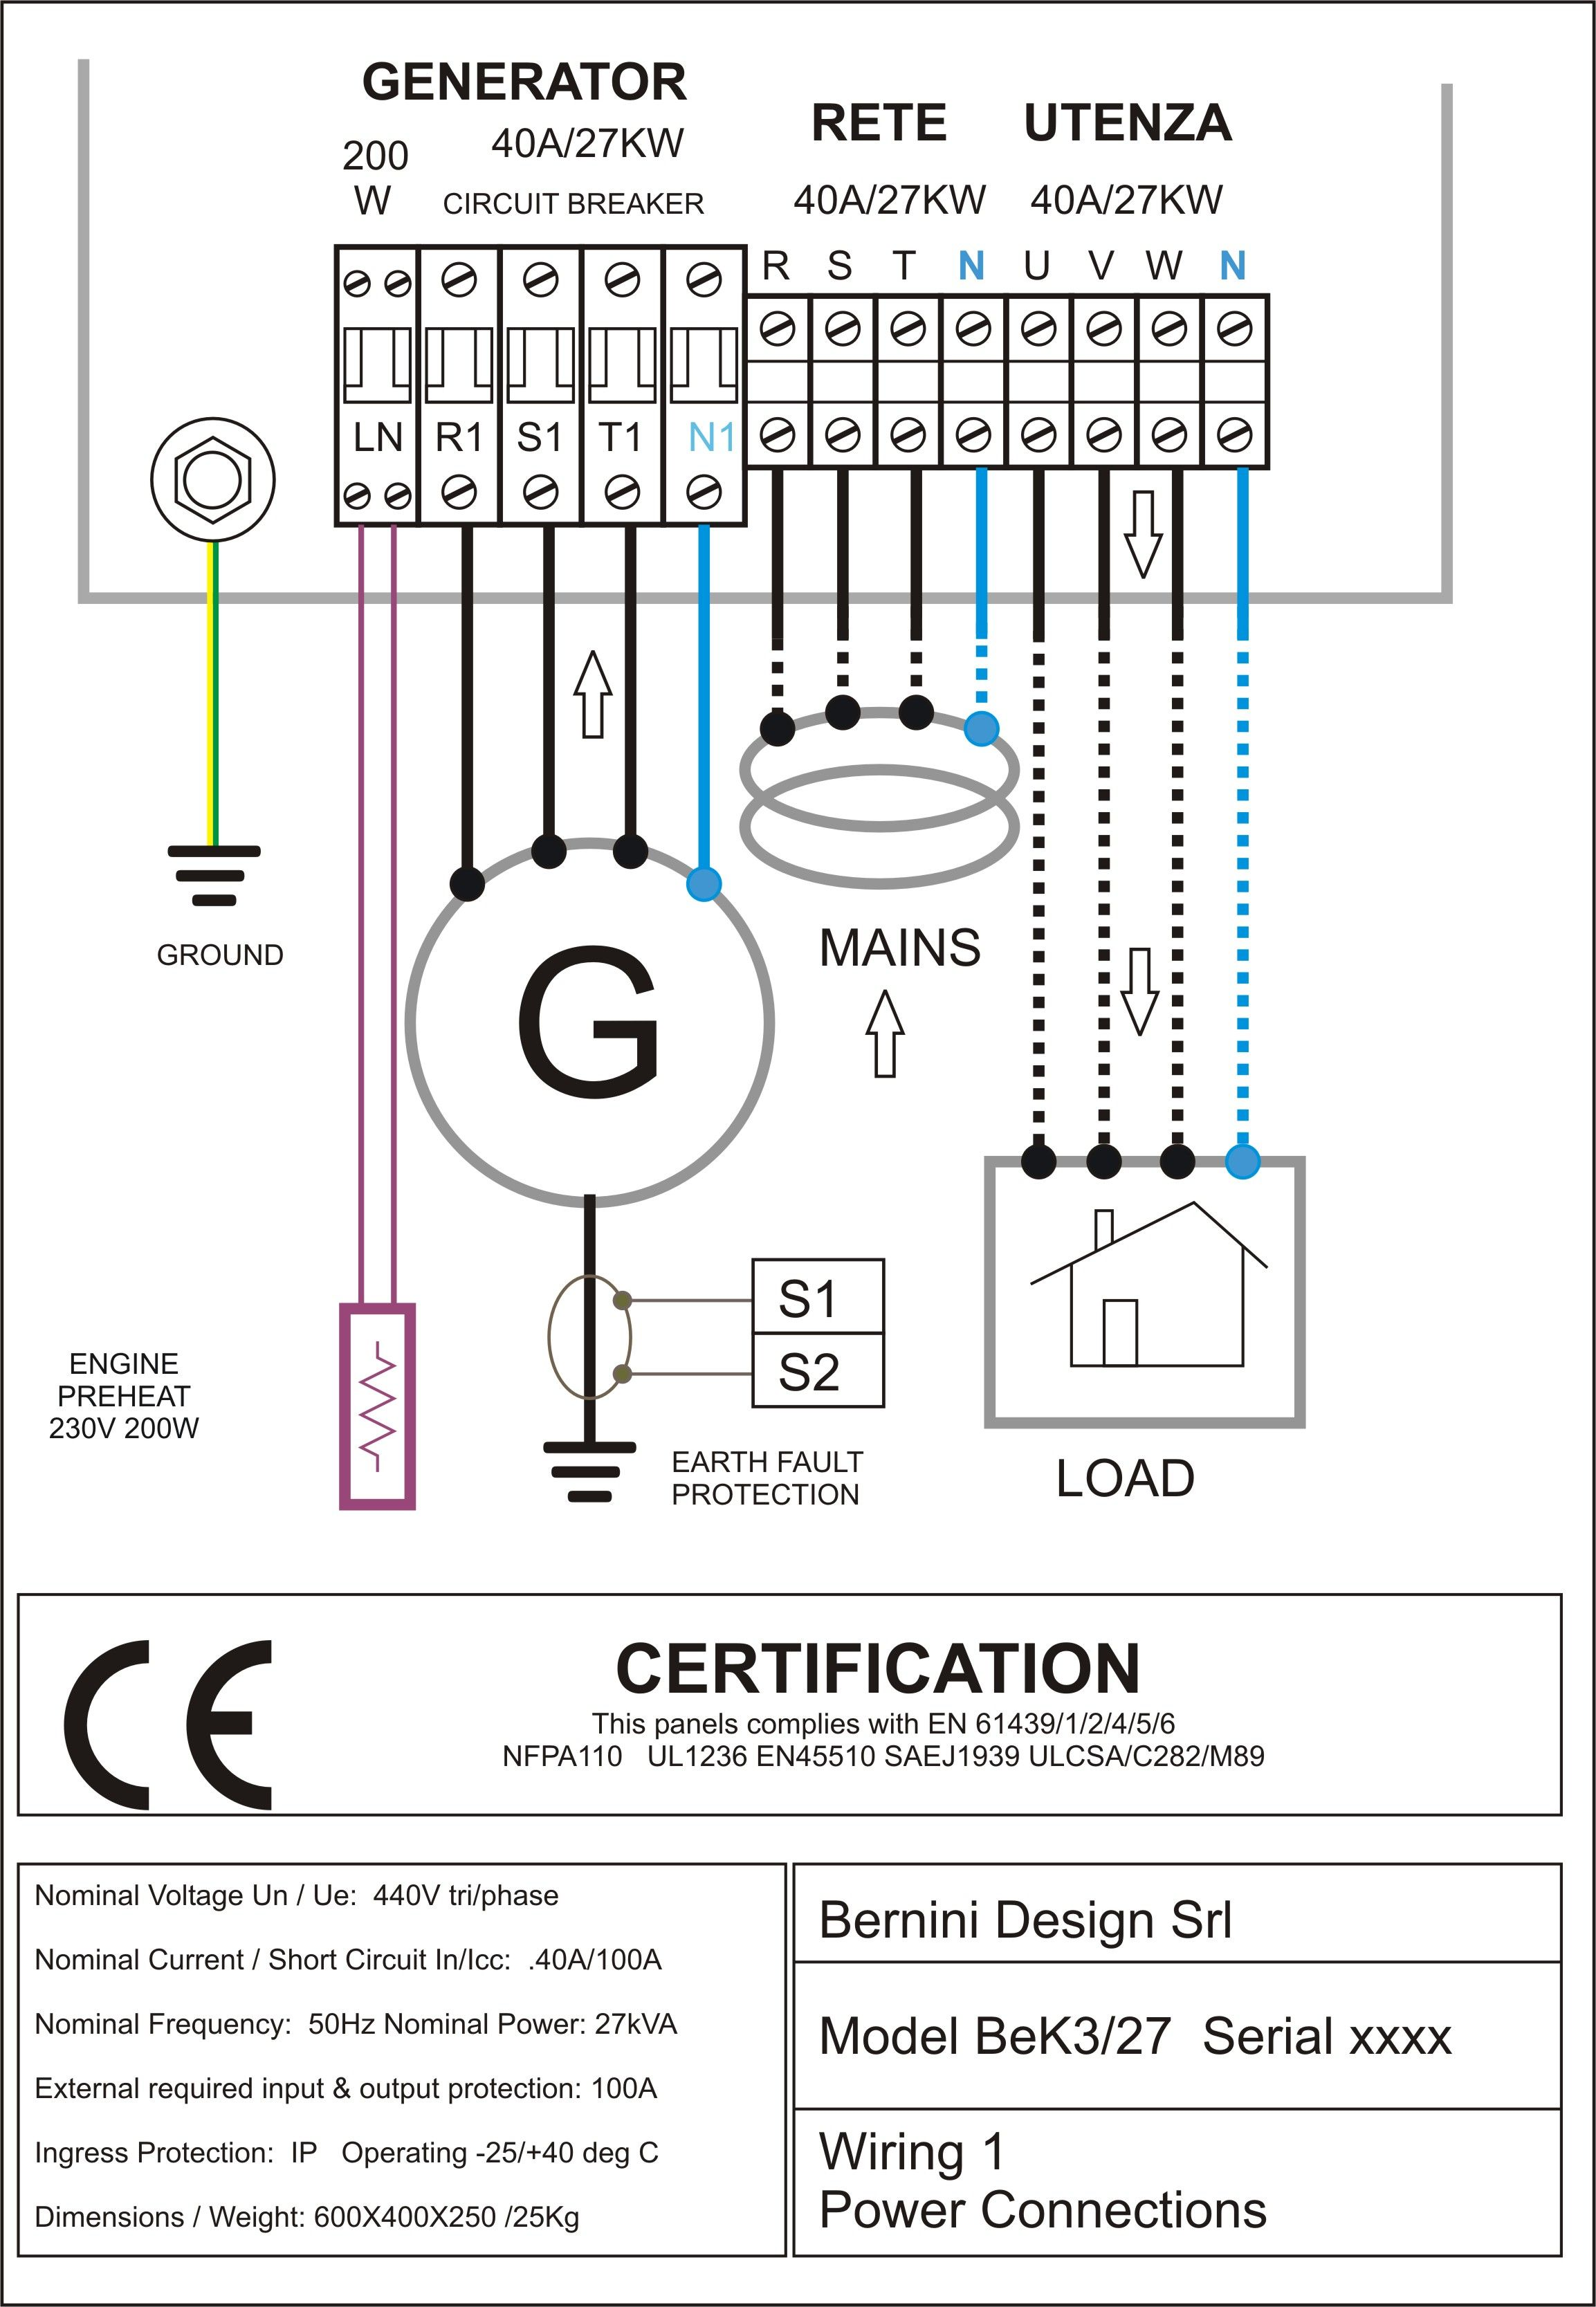 e789bca93f9142d48250ddc66668a81d diesel generator control panel wiring diagram ac connections gr generator wiring diagrams at gsmx.co